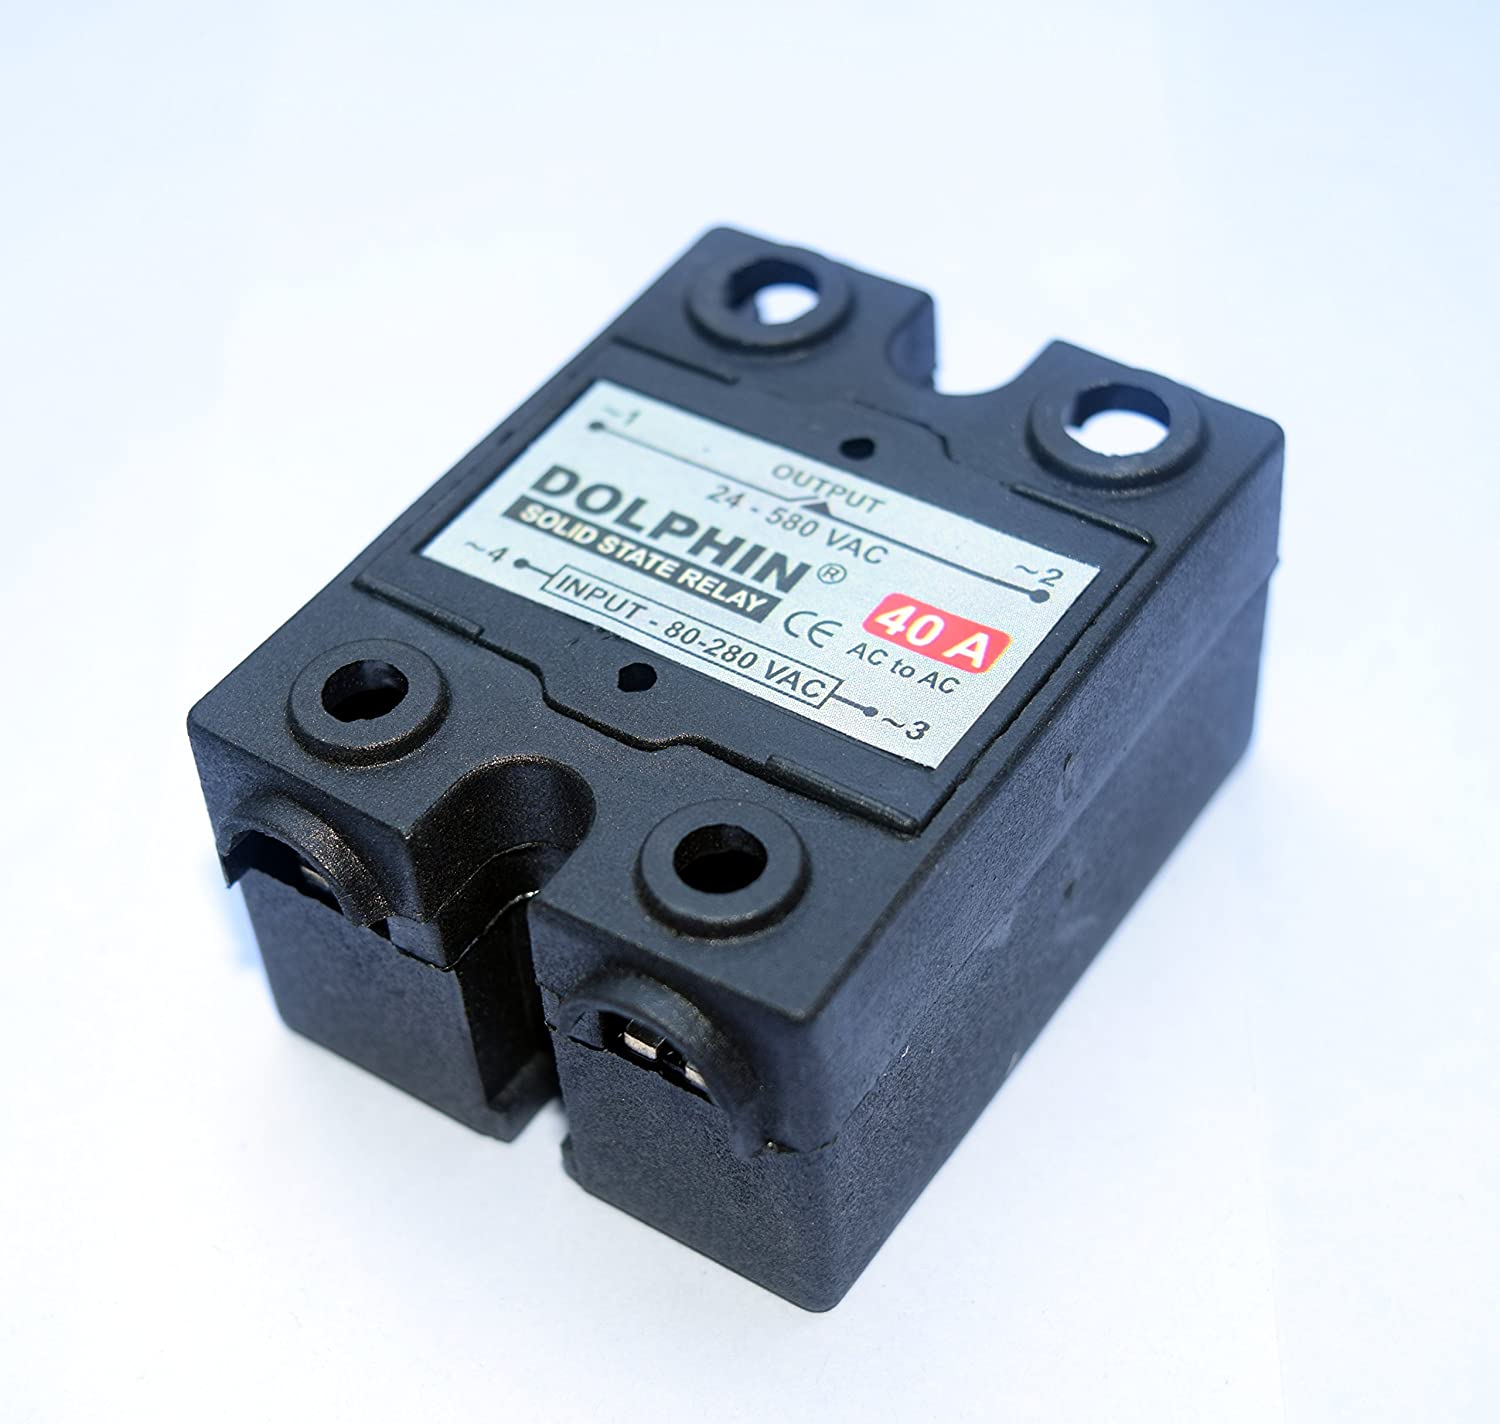 Solid State Relay Ssr Ac To Rating 40 A Make Dolphin Amazon For Industrial Scientific